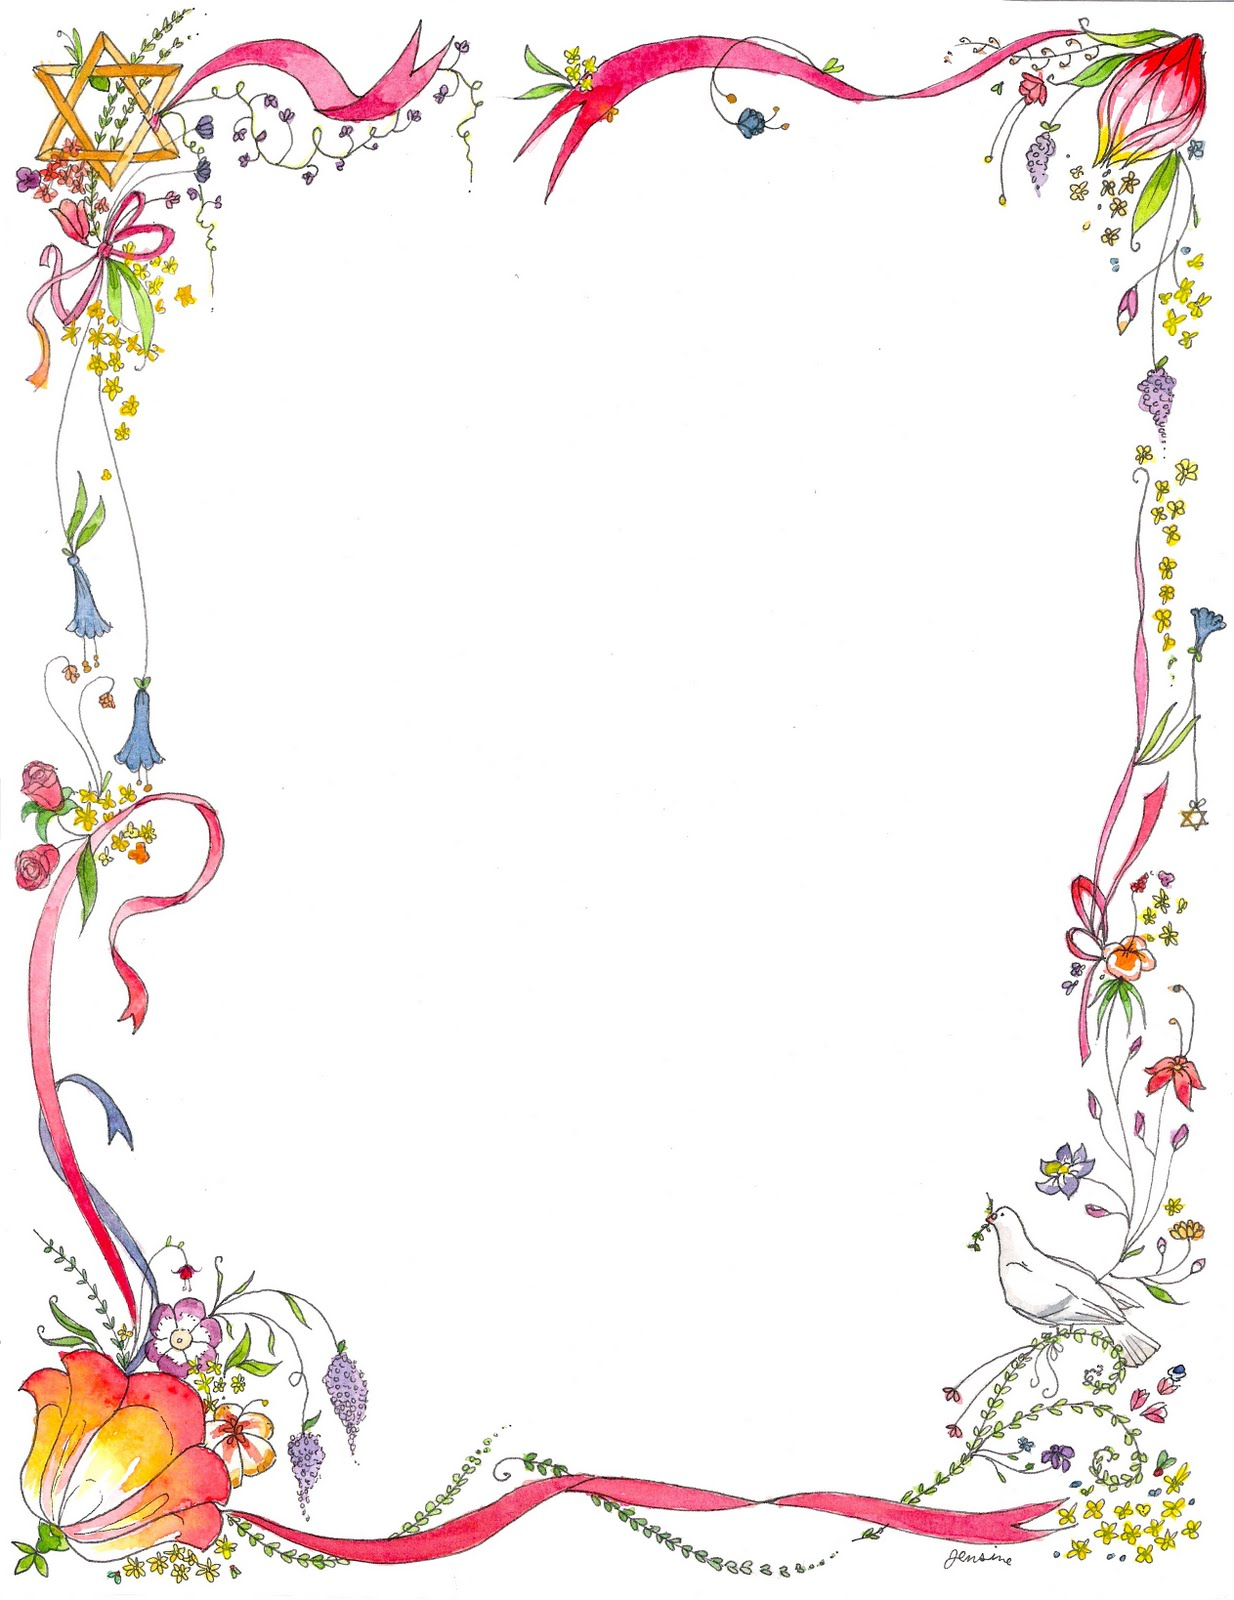 Pin Page Border Designs Free on Pinterest